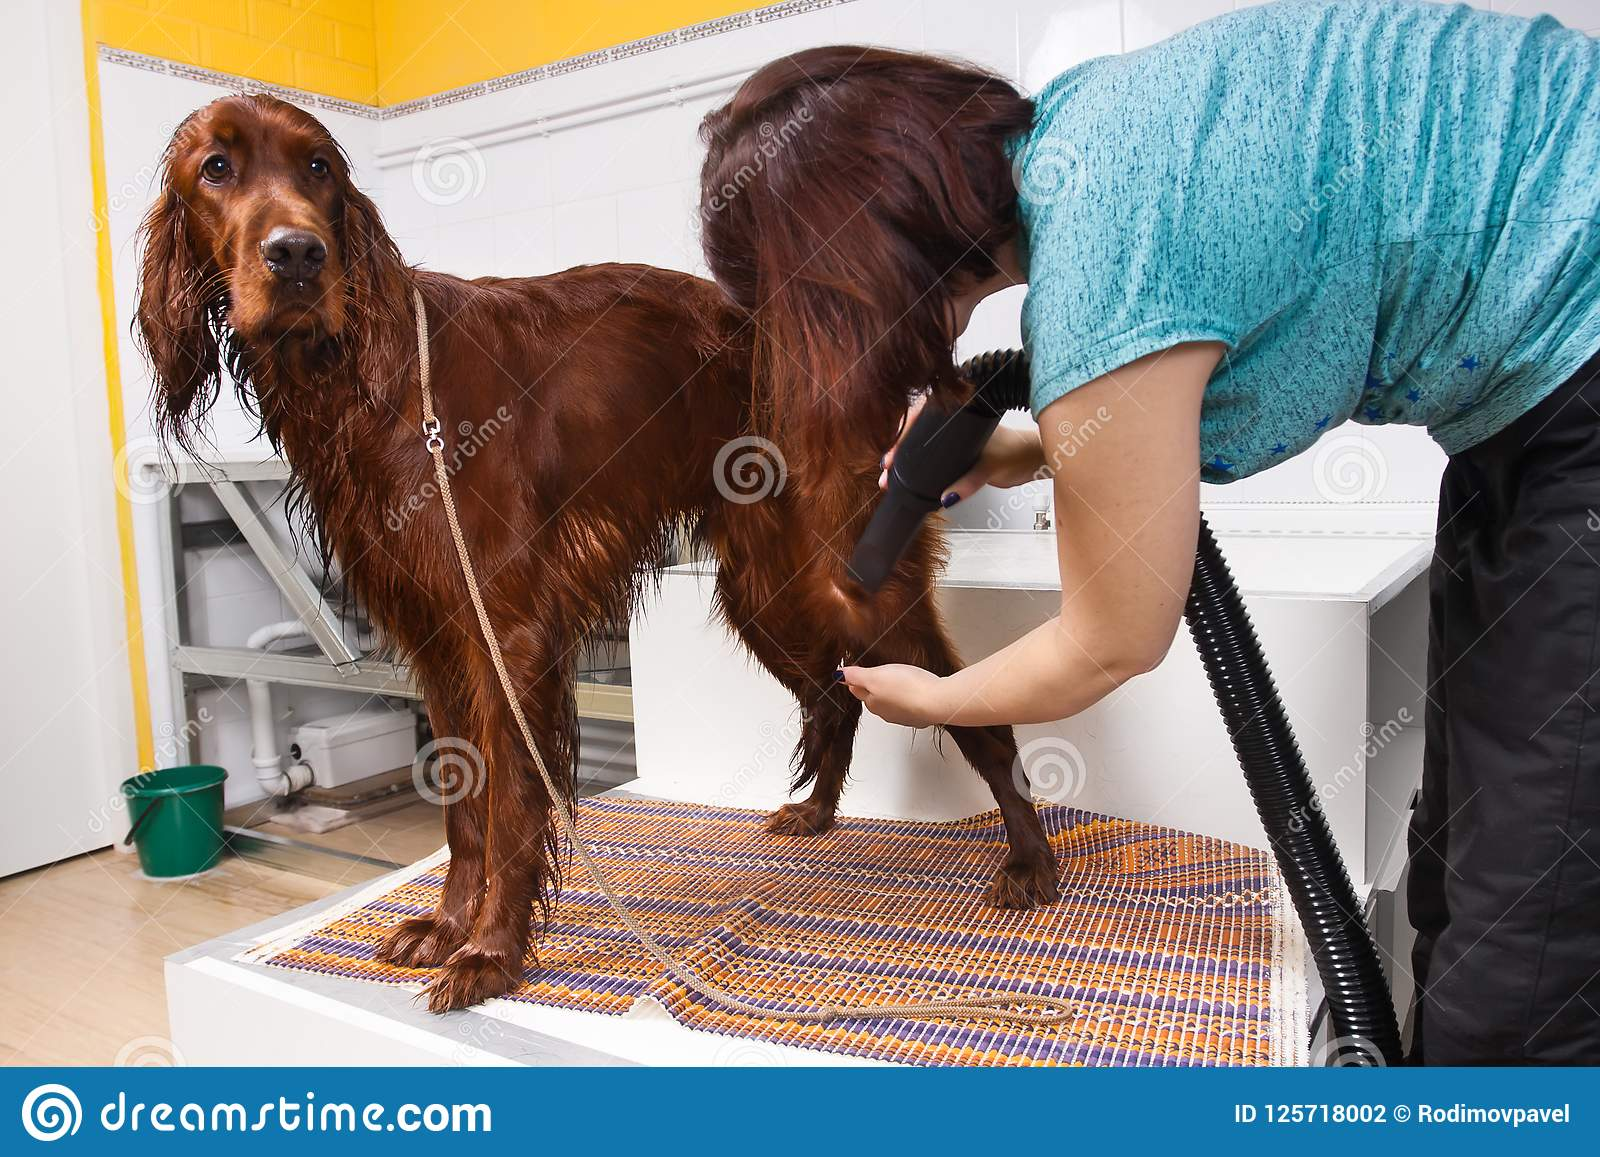 Groomer with hair dryer and dog at salon